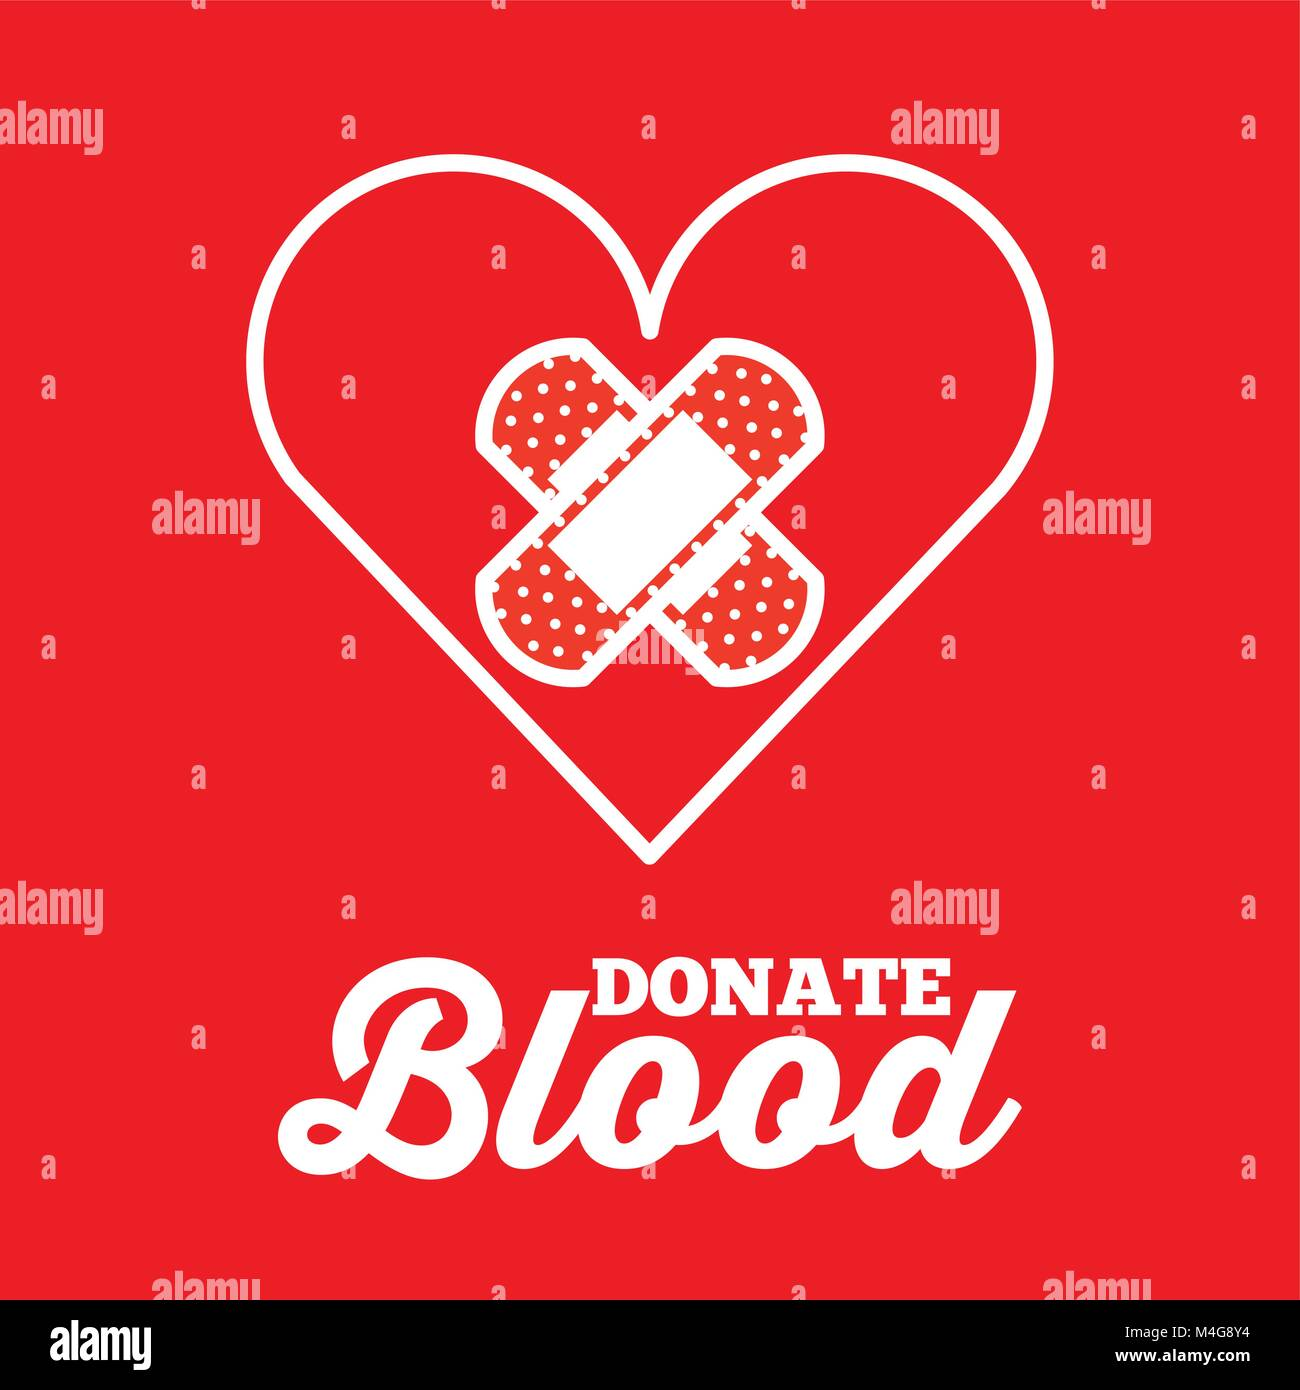 heart and plaster cross donate blood red background - Stock Image